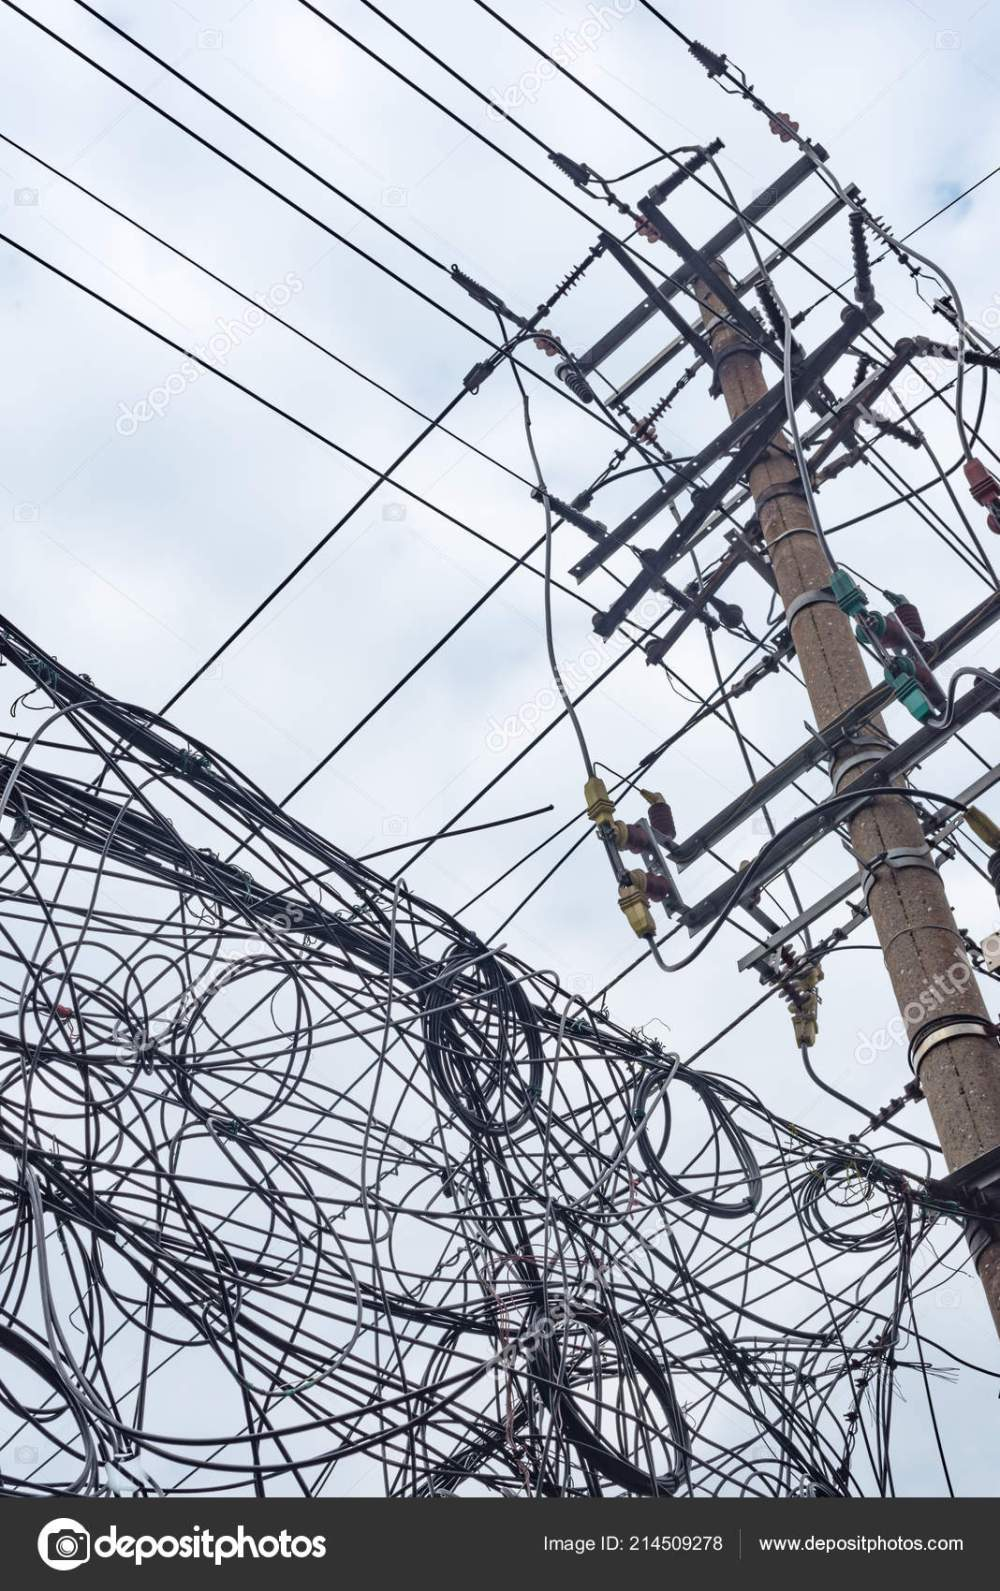 medium resolution of telephone pole and chaotic mess of wires against sky stock photo